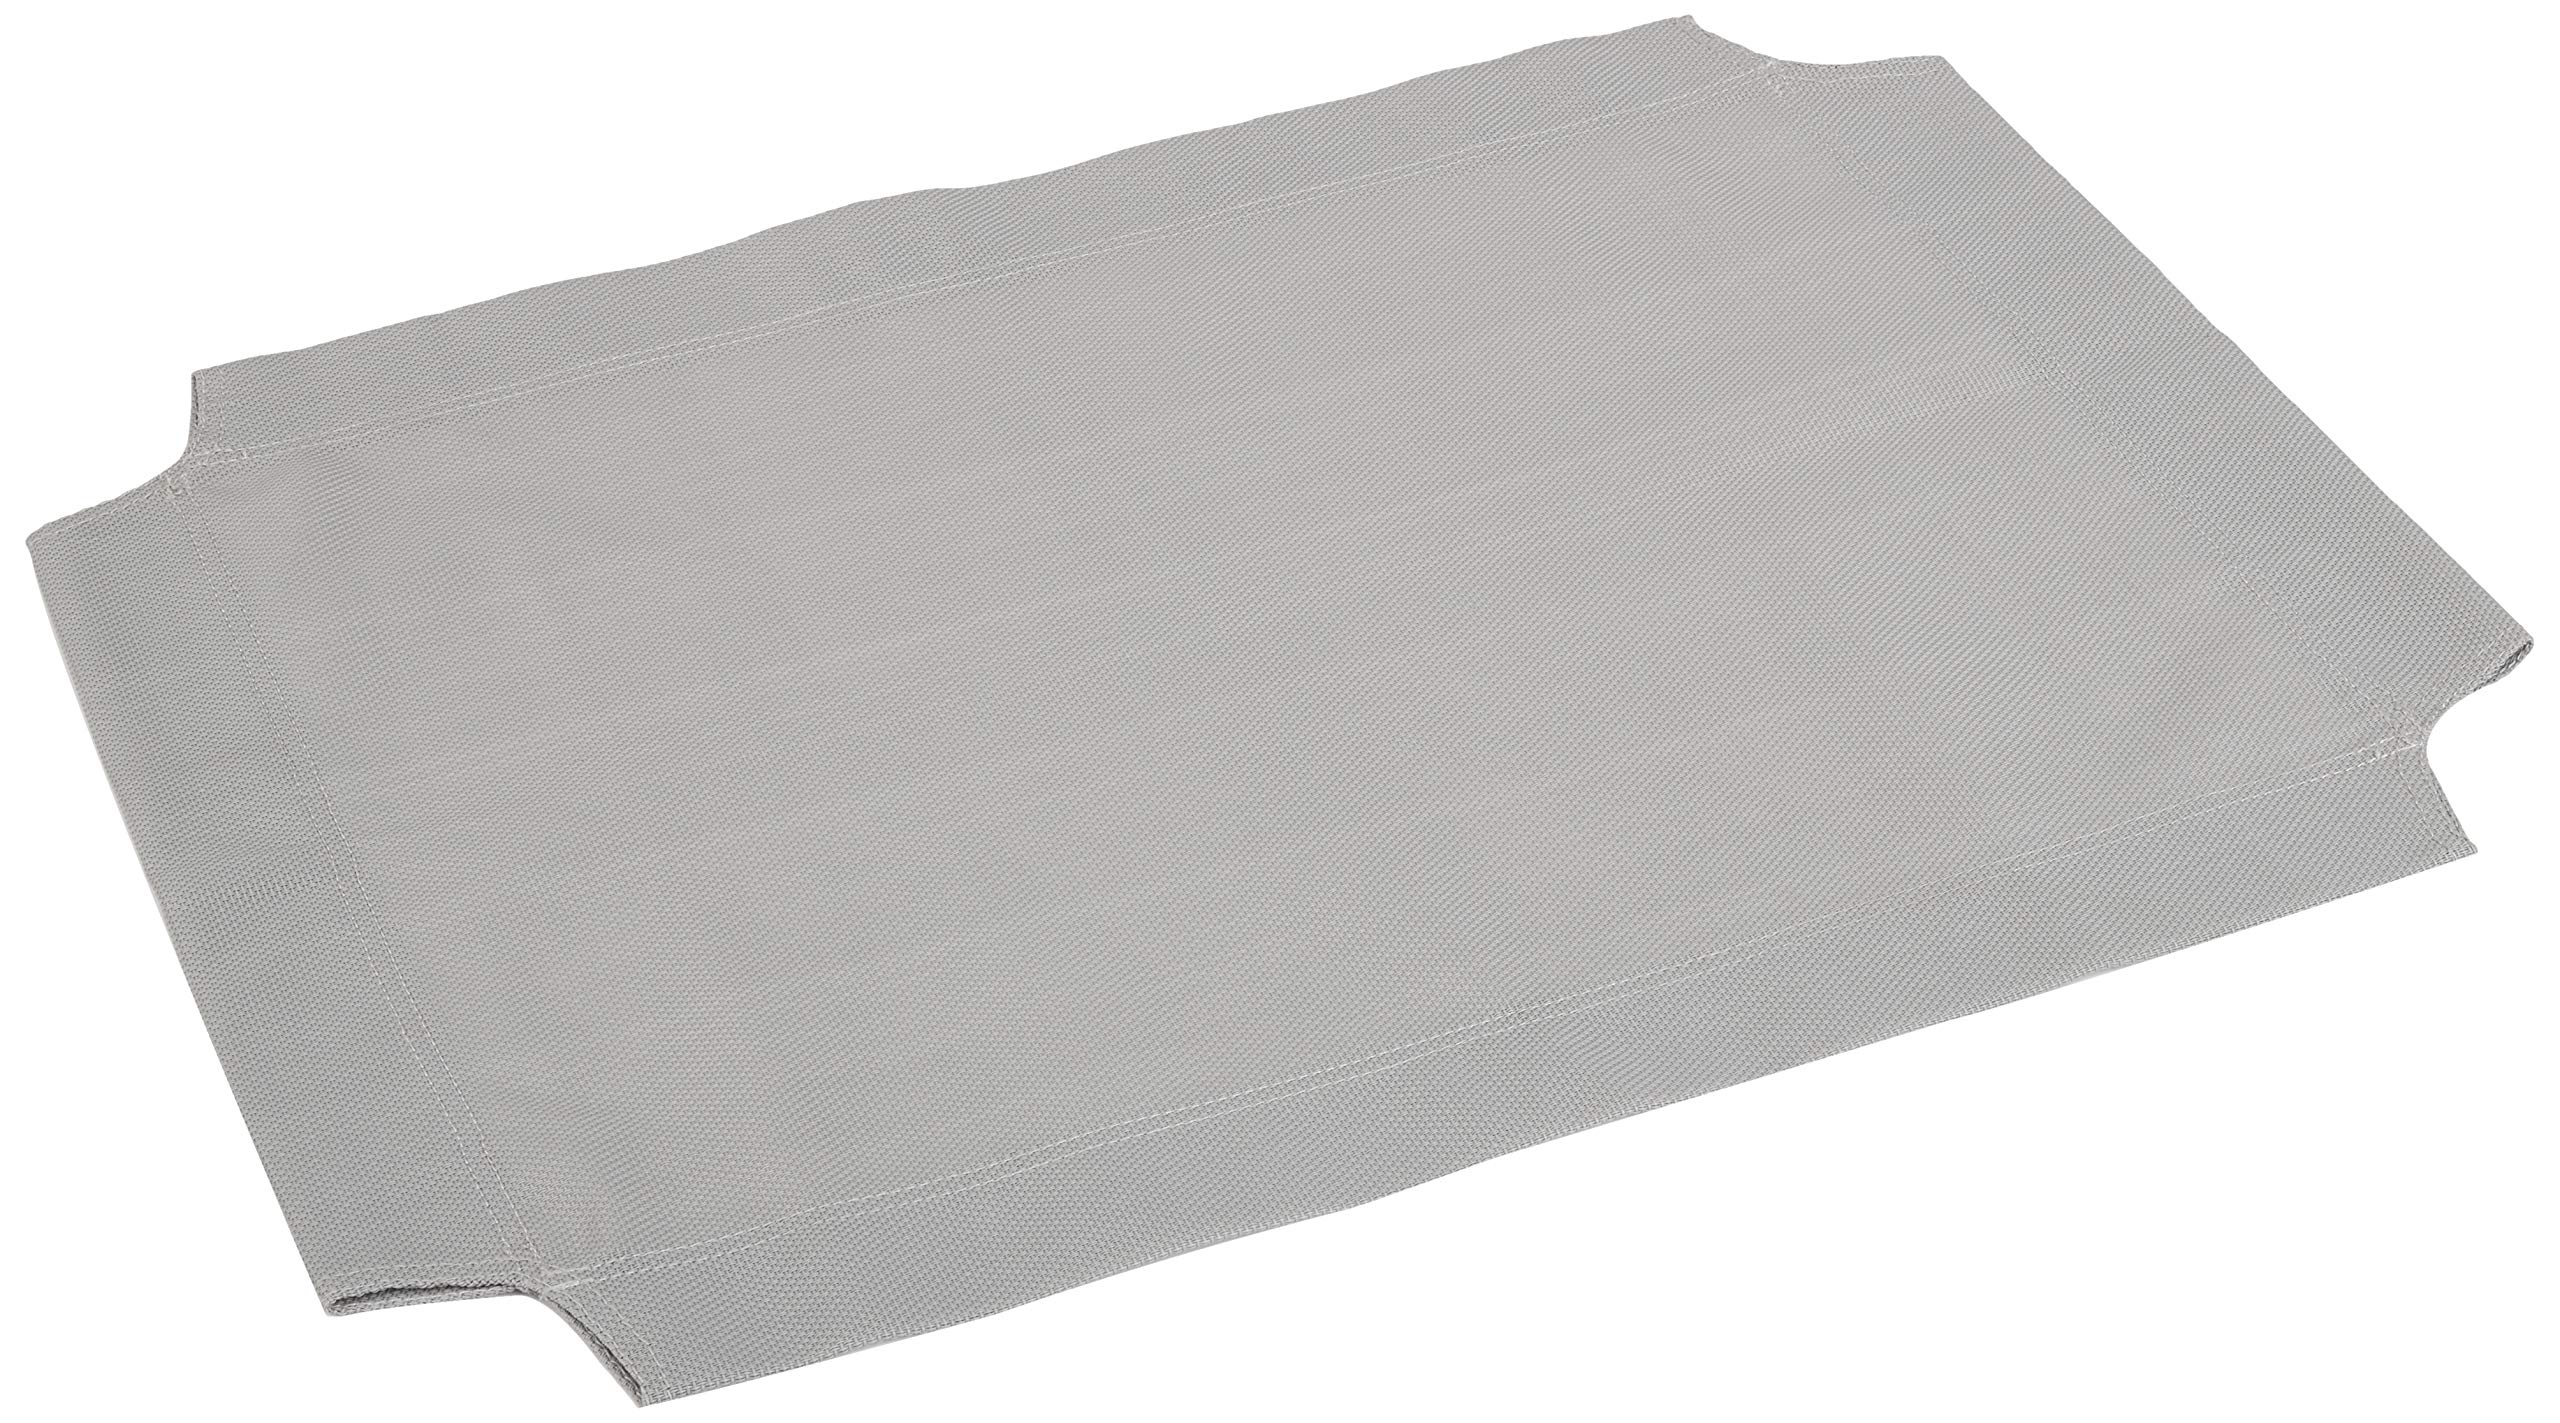 AmazonBasics Elevated Cooling Pet Bed Replacement Cover